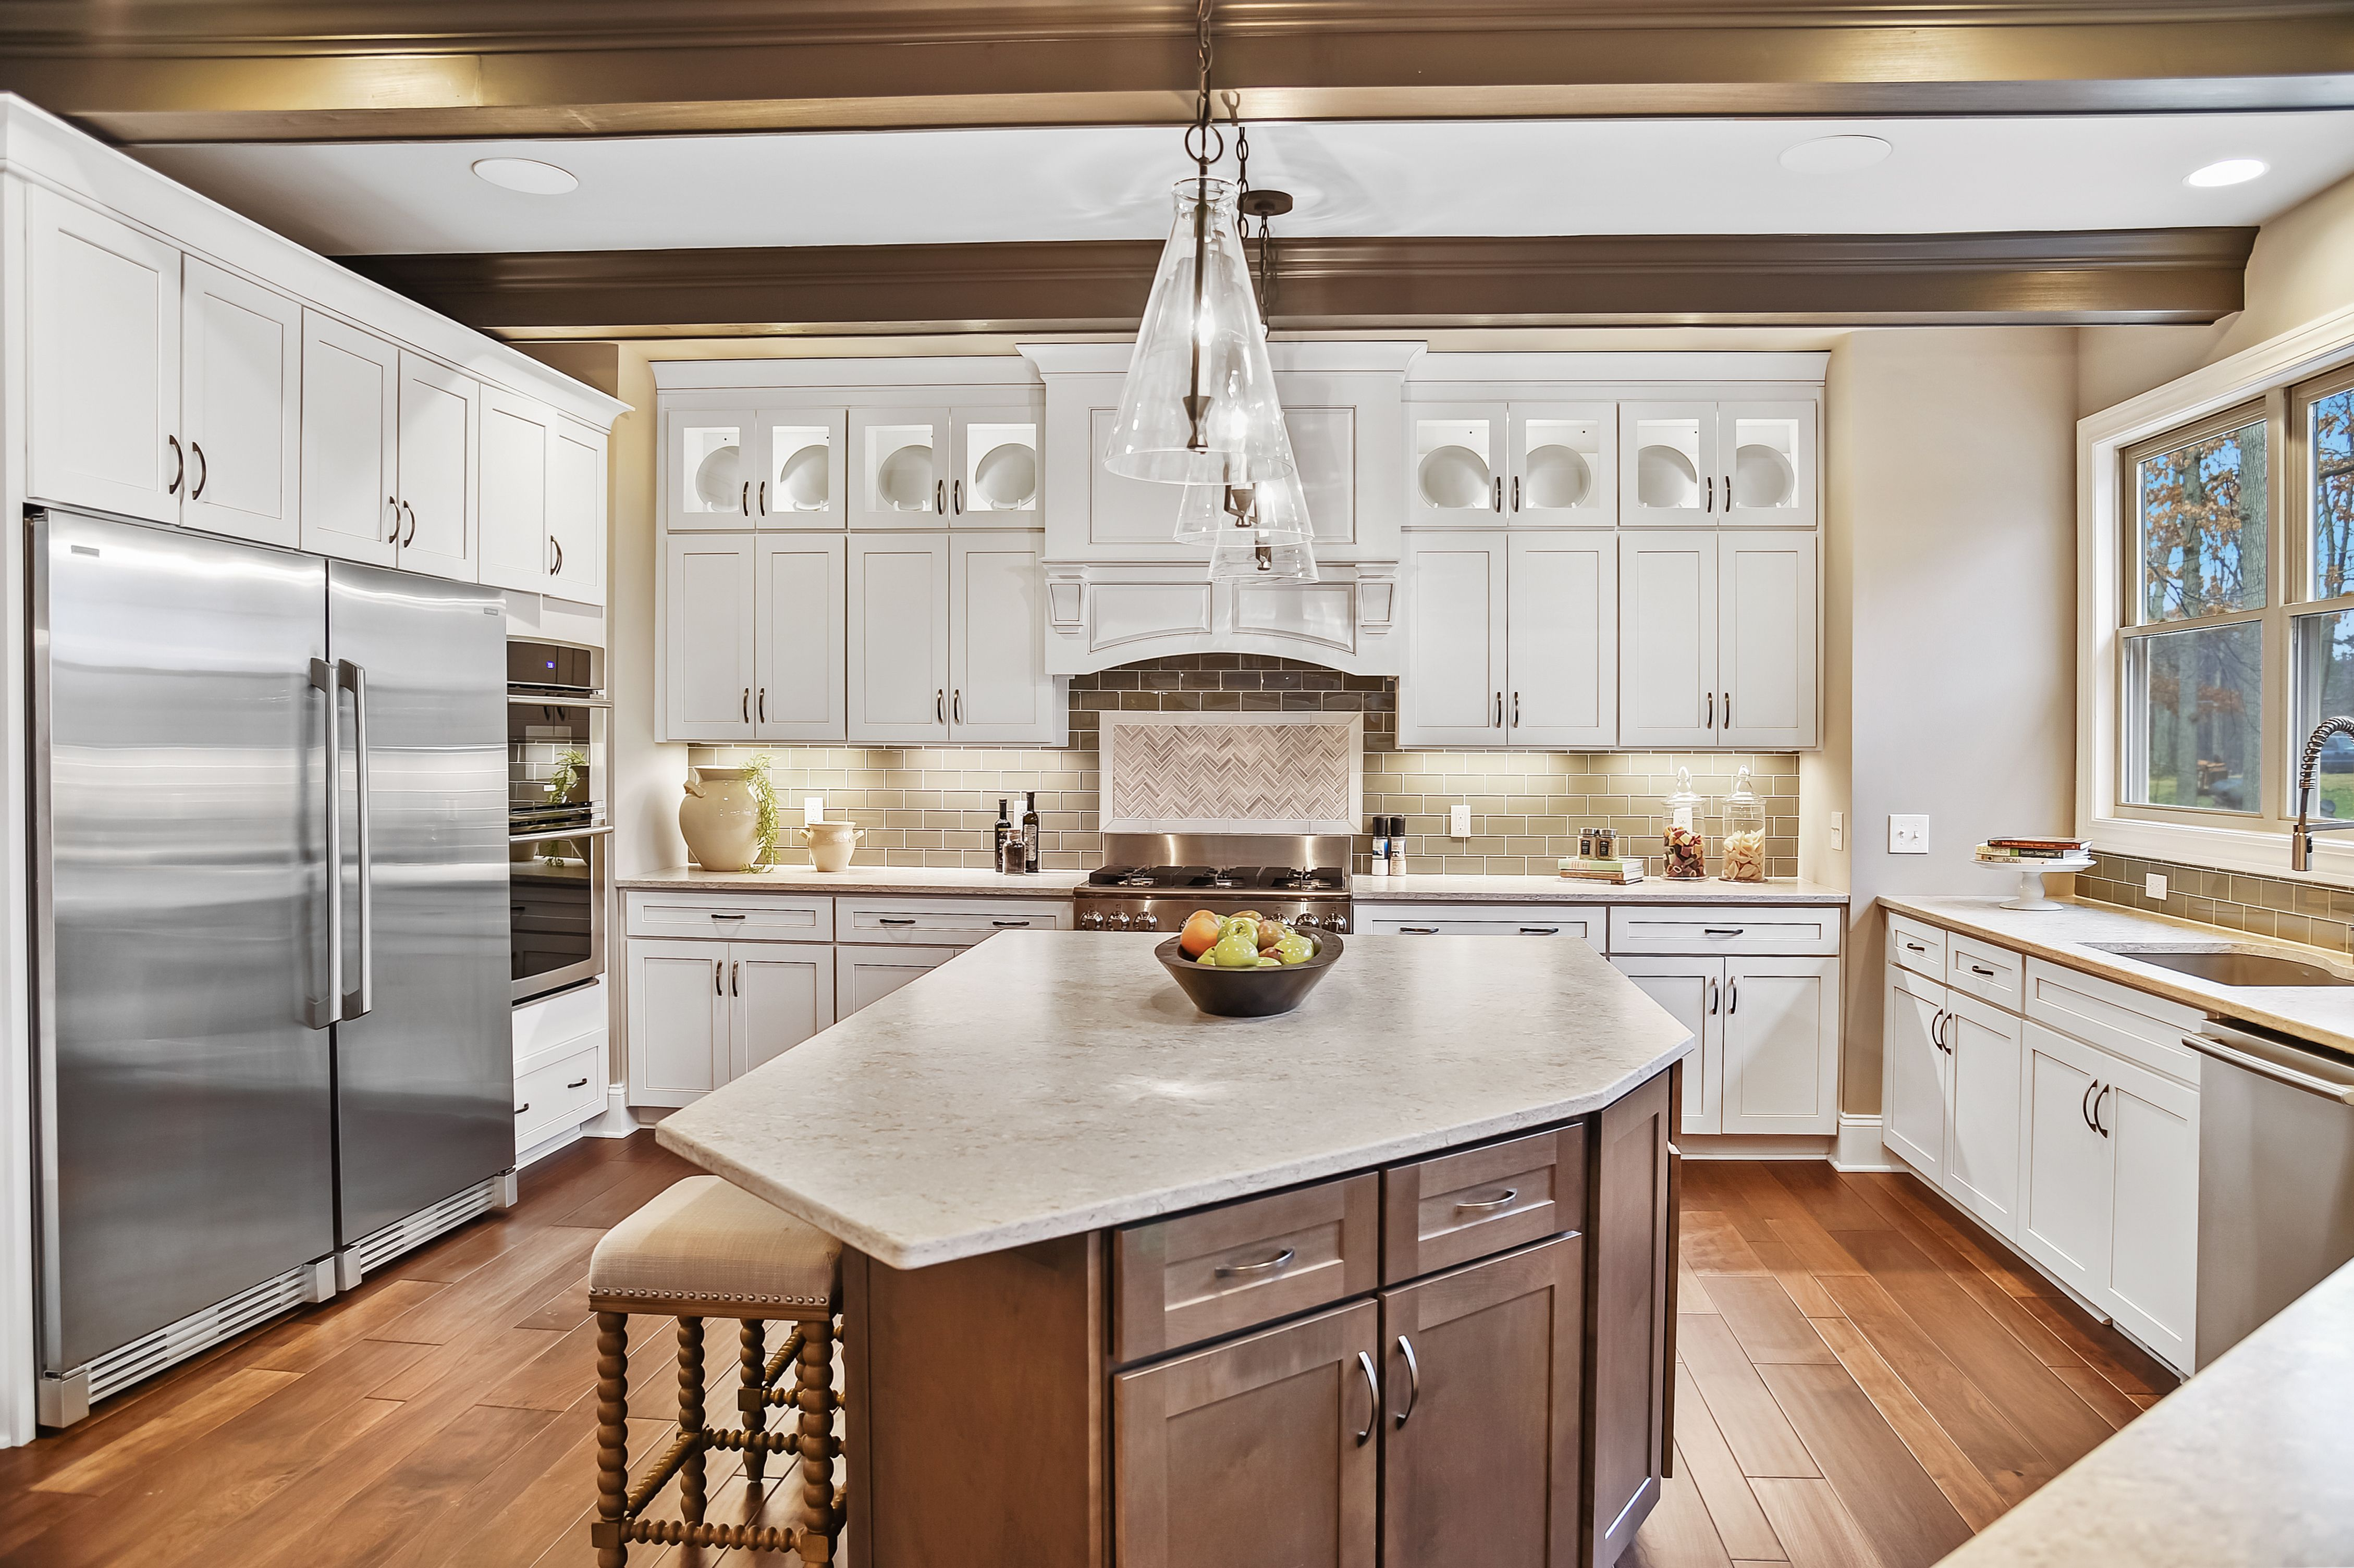 Kitchen featured in the Mercato By Parkview Custom Homes  in Cleveland, OH